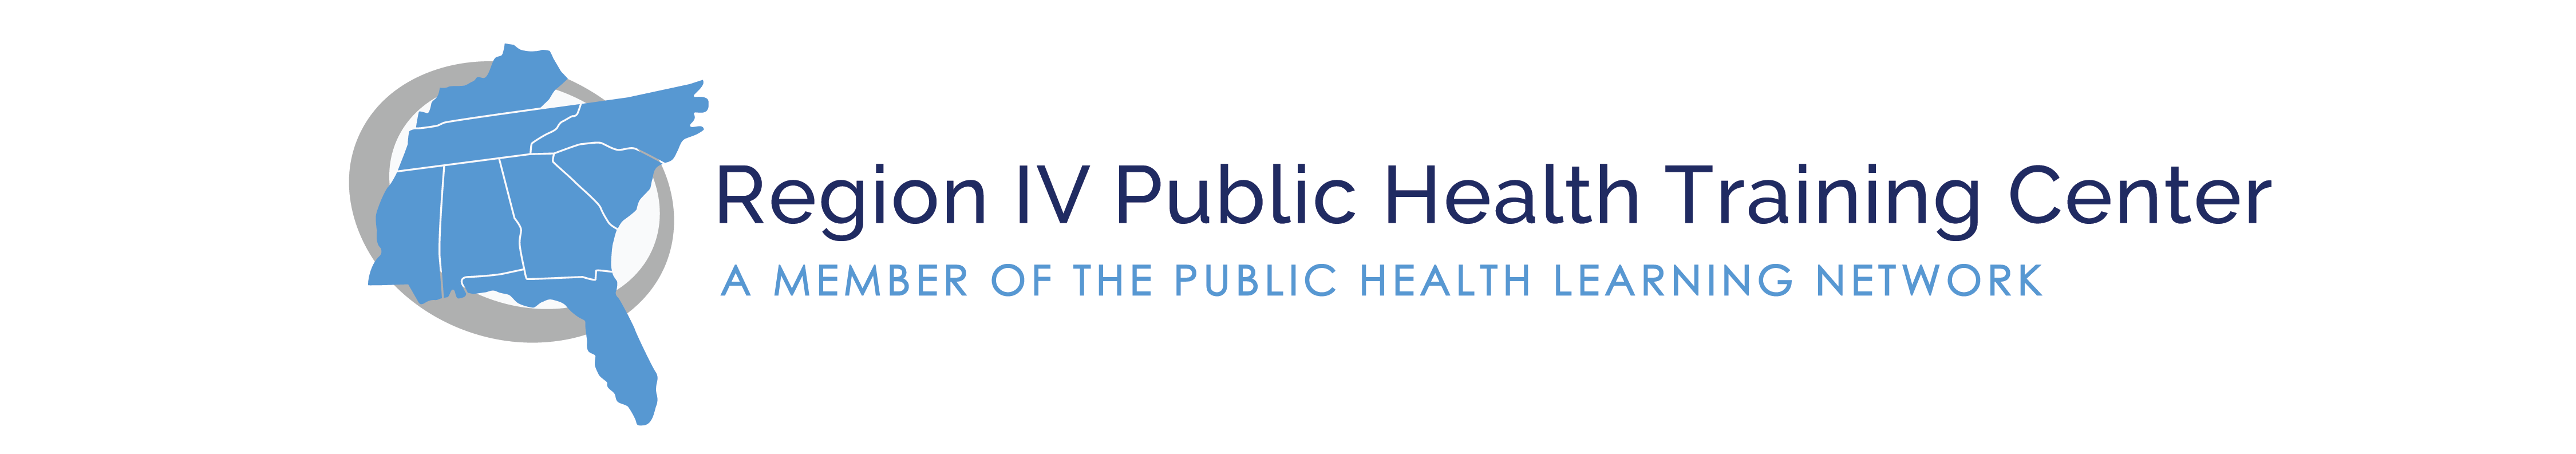 Region IV Public Health Training Center